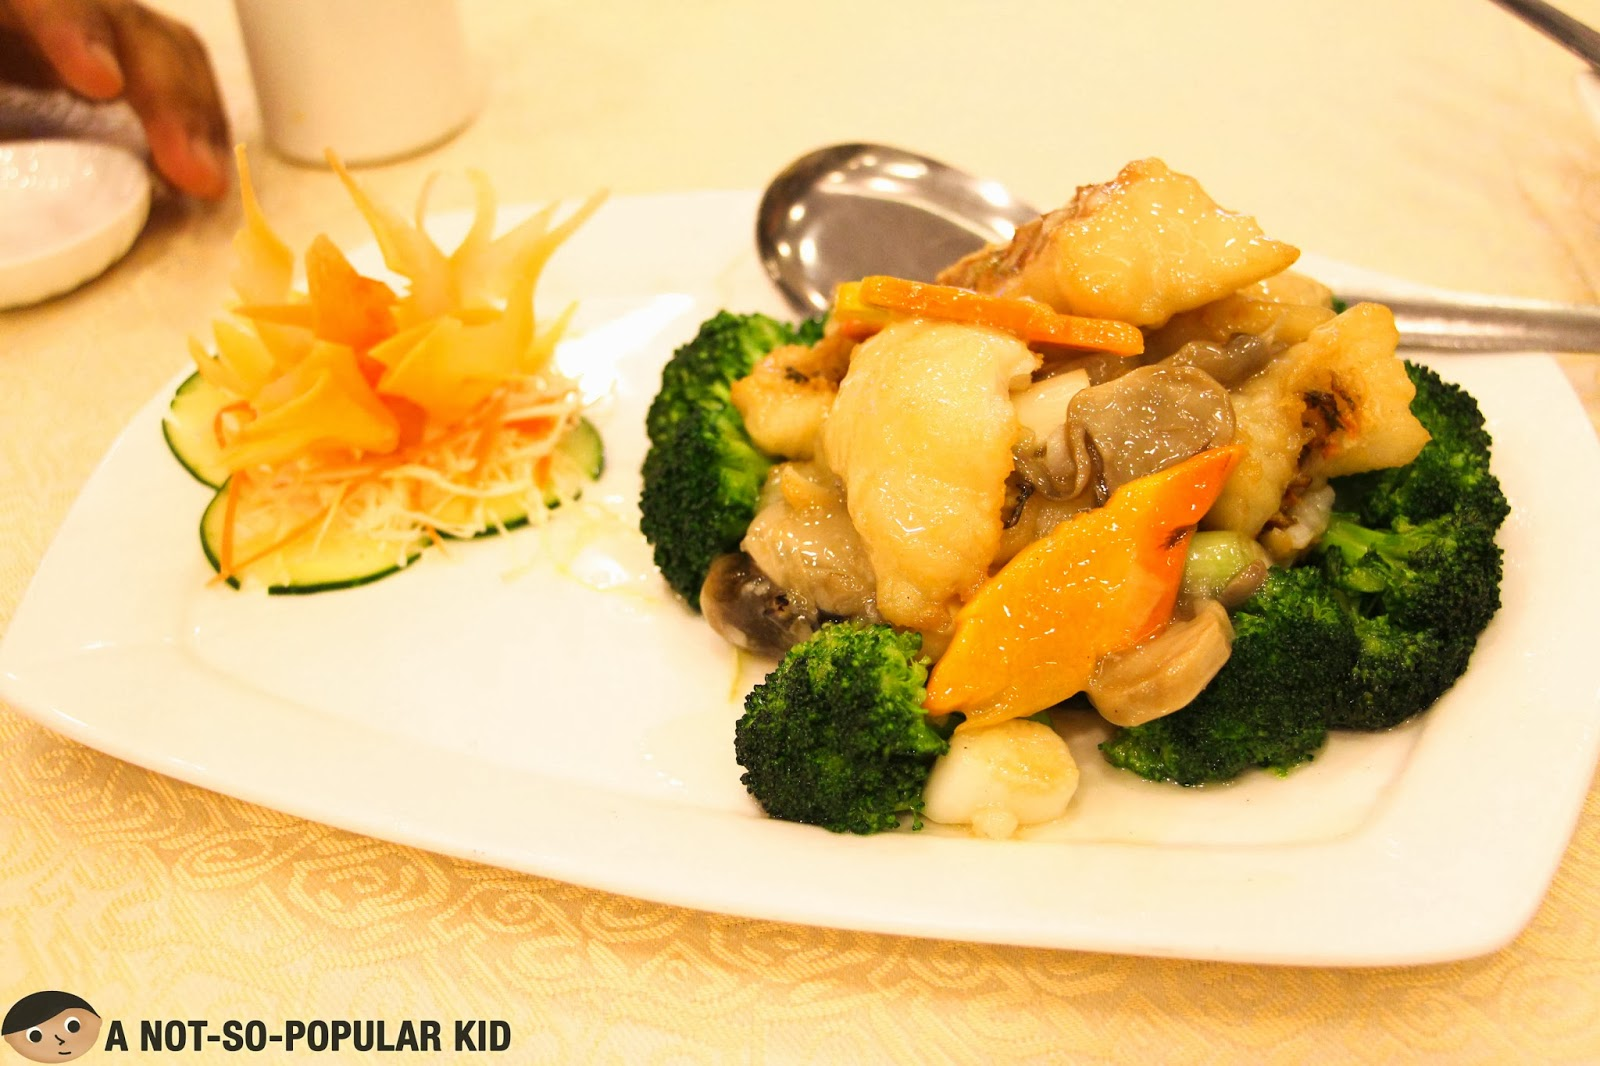 Sauteed Fish Fillet with Vegetables of Golden Fortune